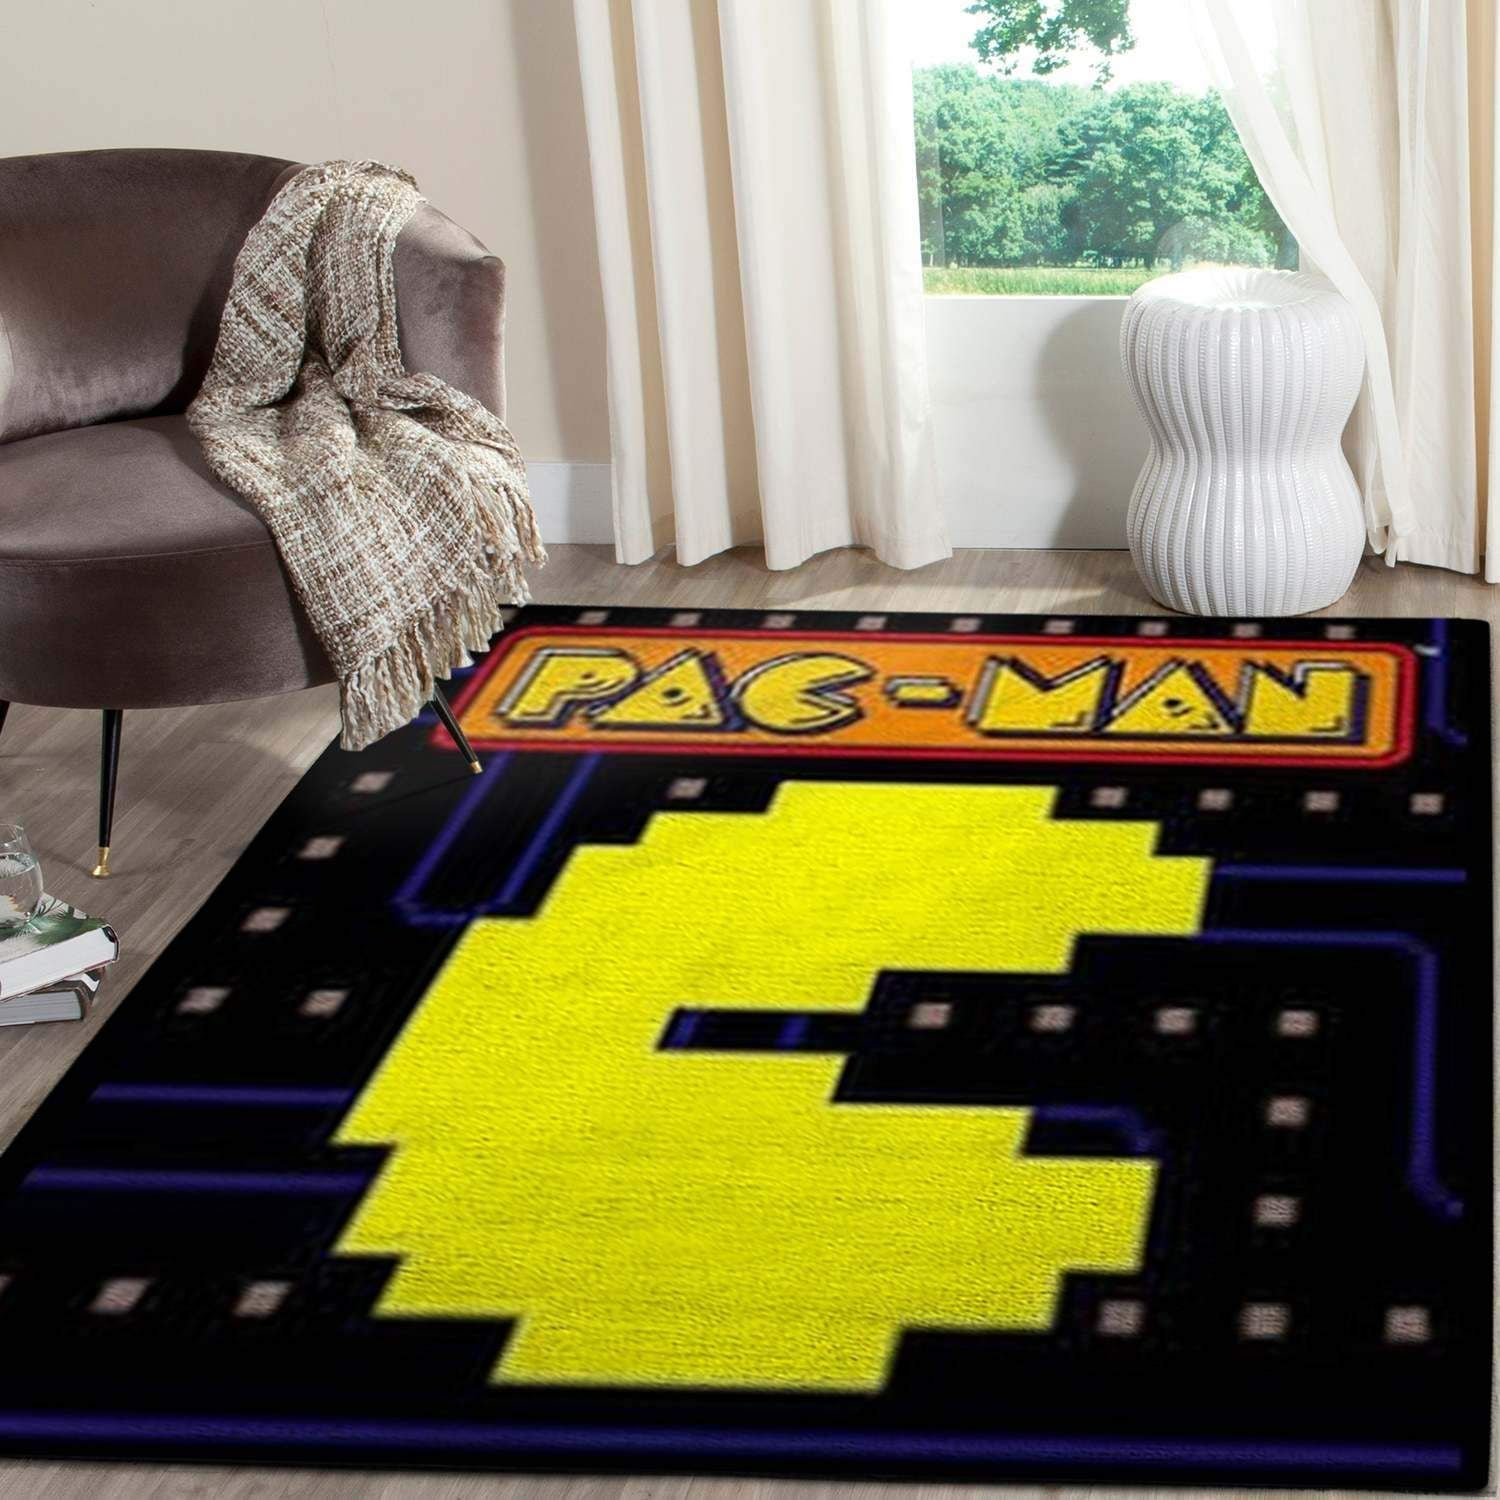 Pacman Gaming Area Rugs Living Room Carpet Christmas Gift Floor Decor RCDD81F34752